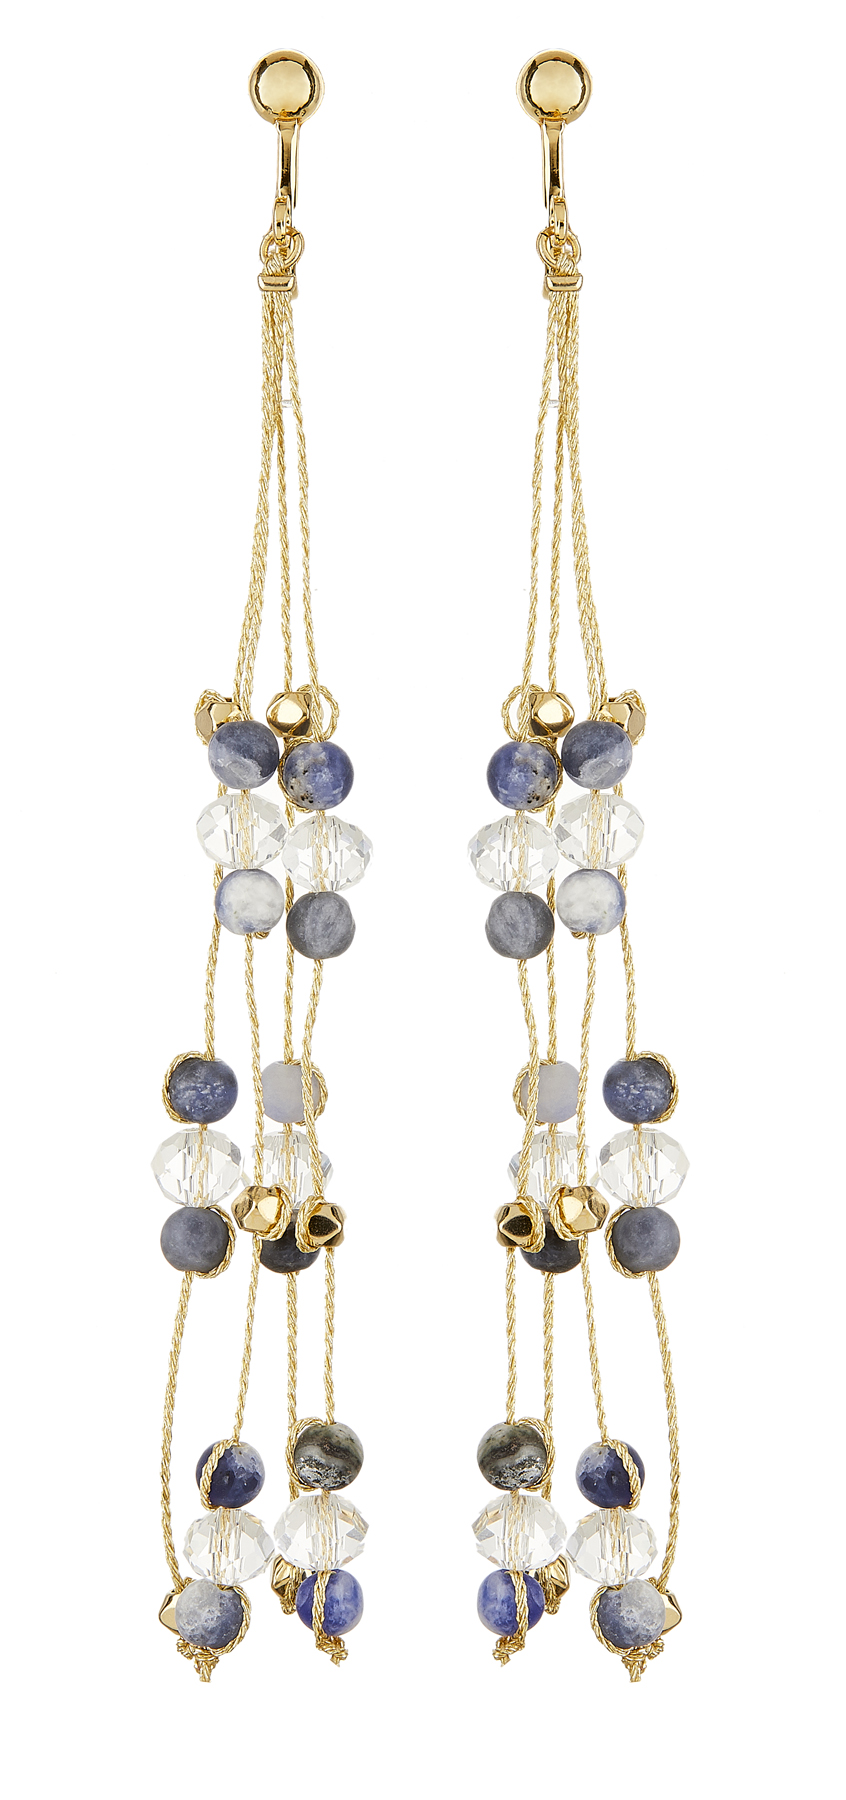 Clip On Earrings - Ryo N - gold drop earring with blue agate stone and glass beads